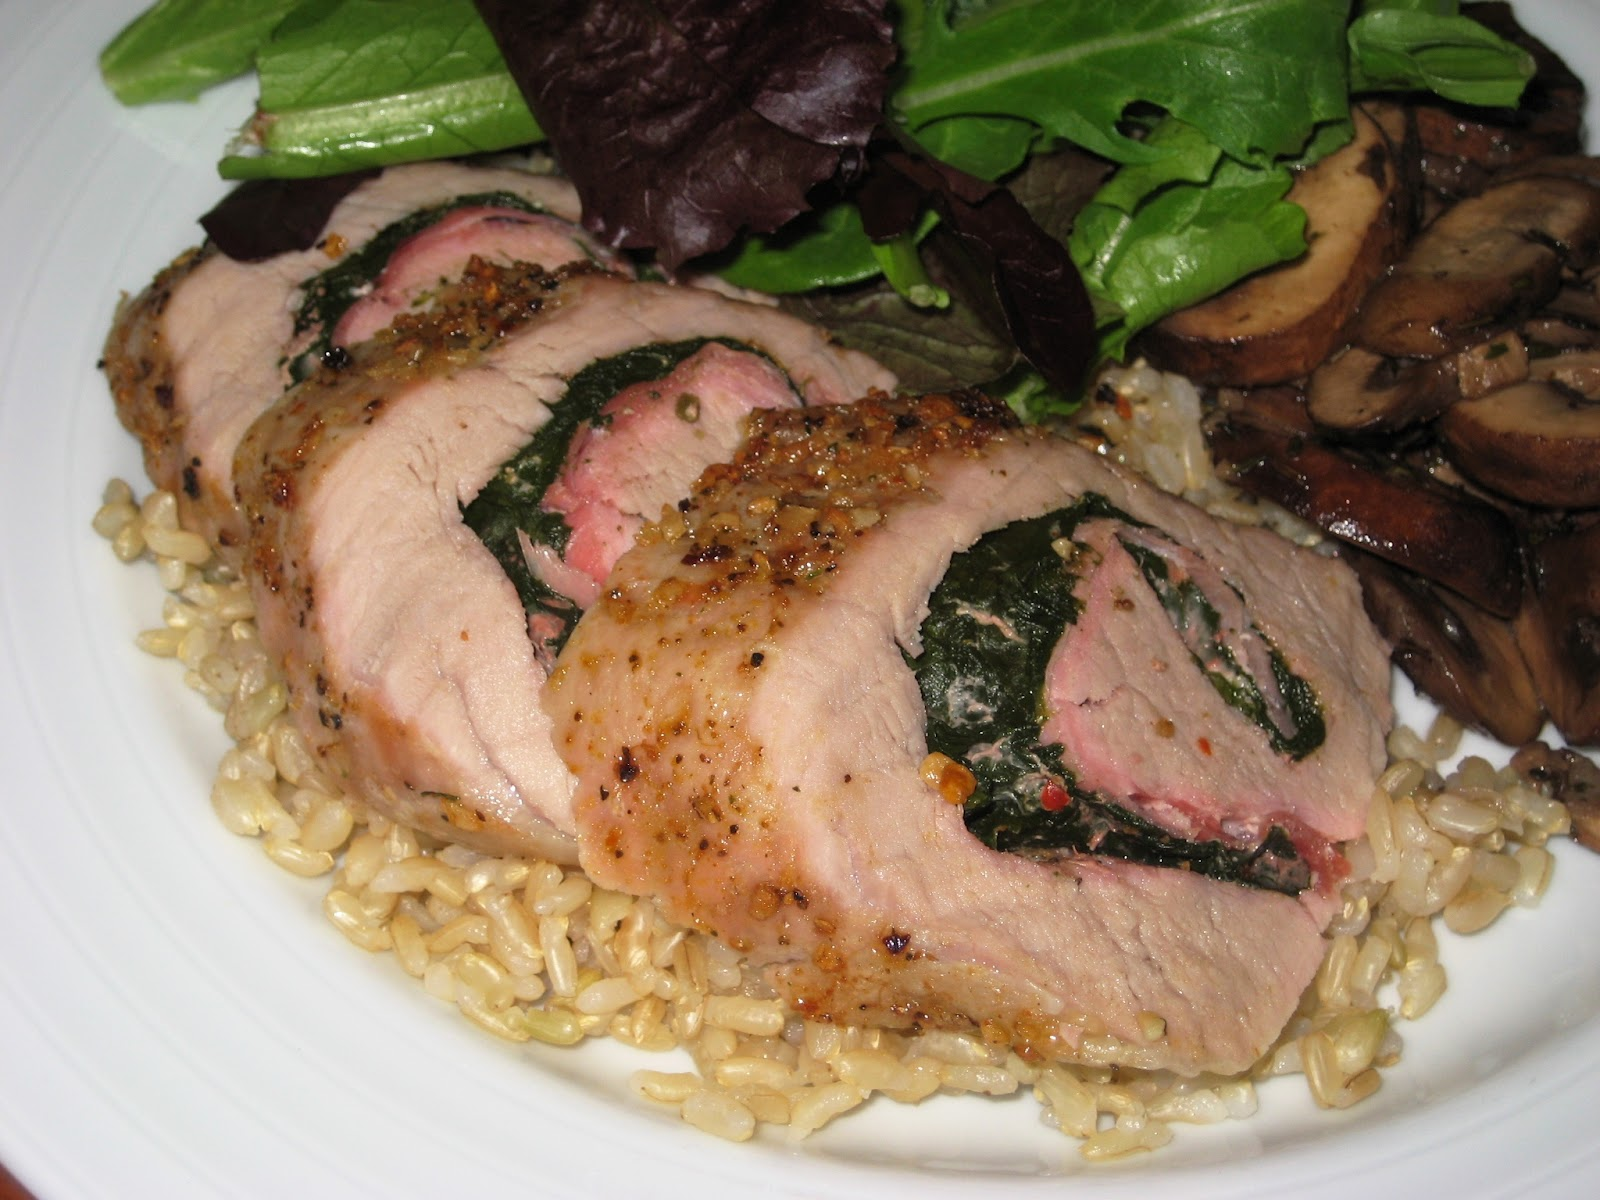 pork loin stuffed with spinach and mozzarella